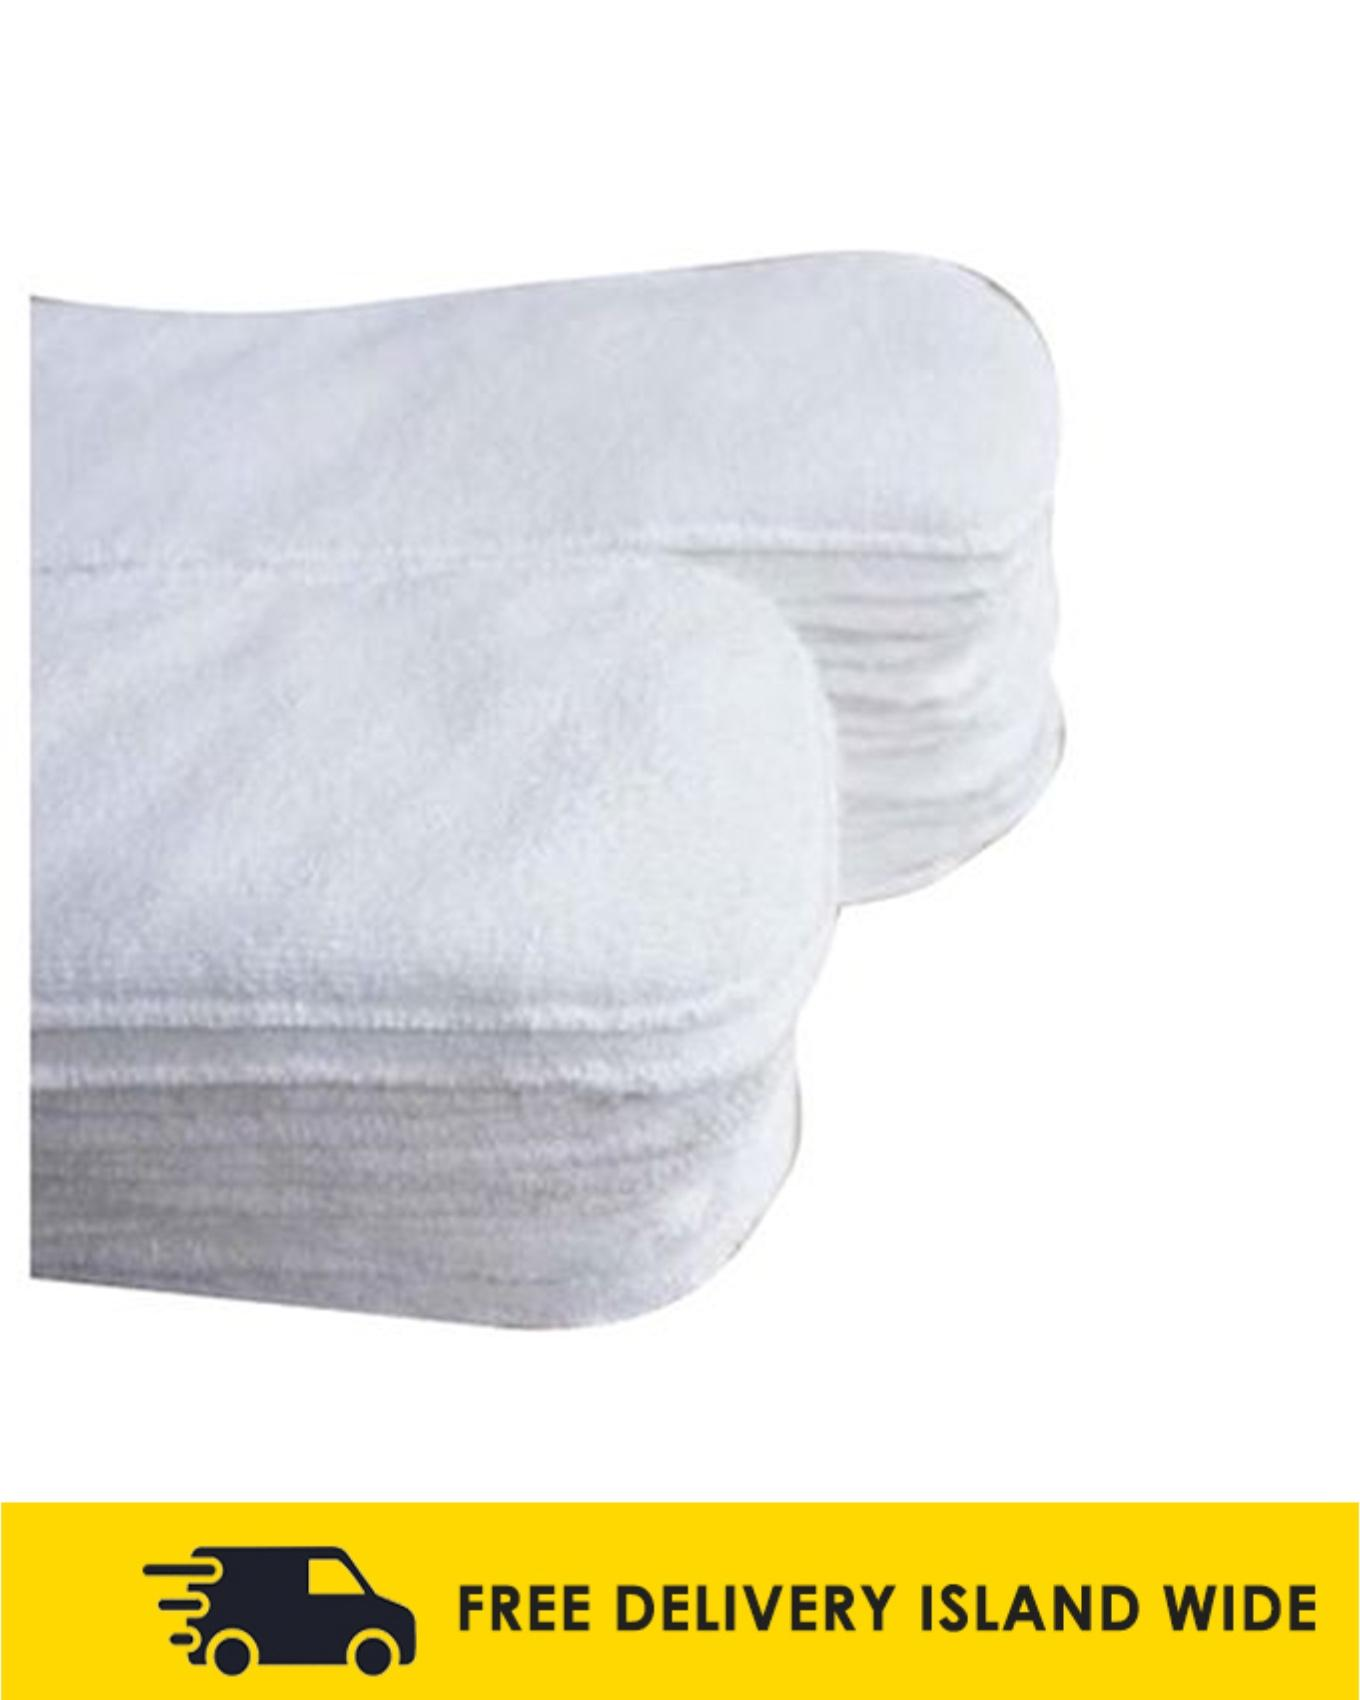 Pack of 5 Reusable Inserts & Nappy Liners